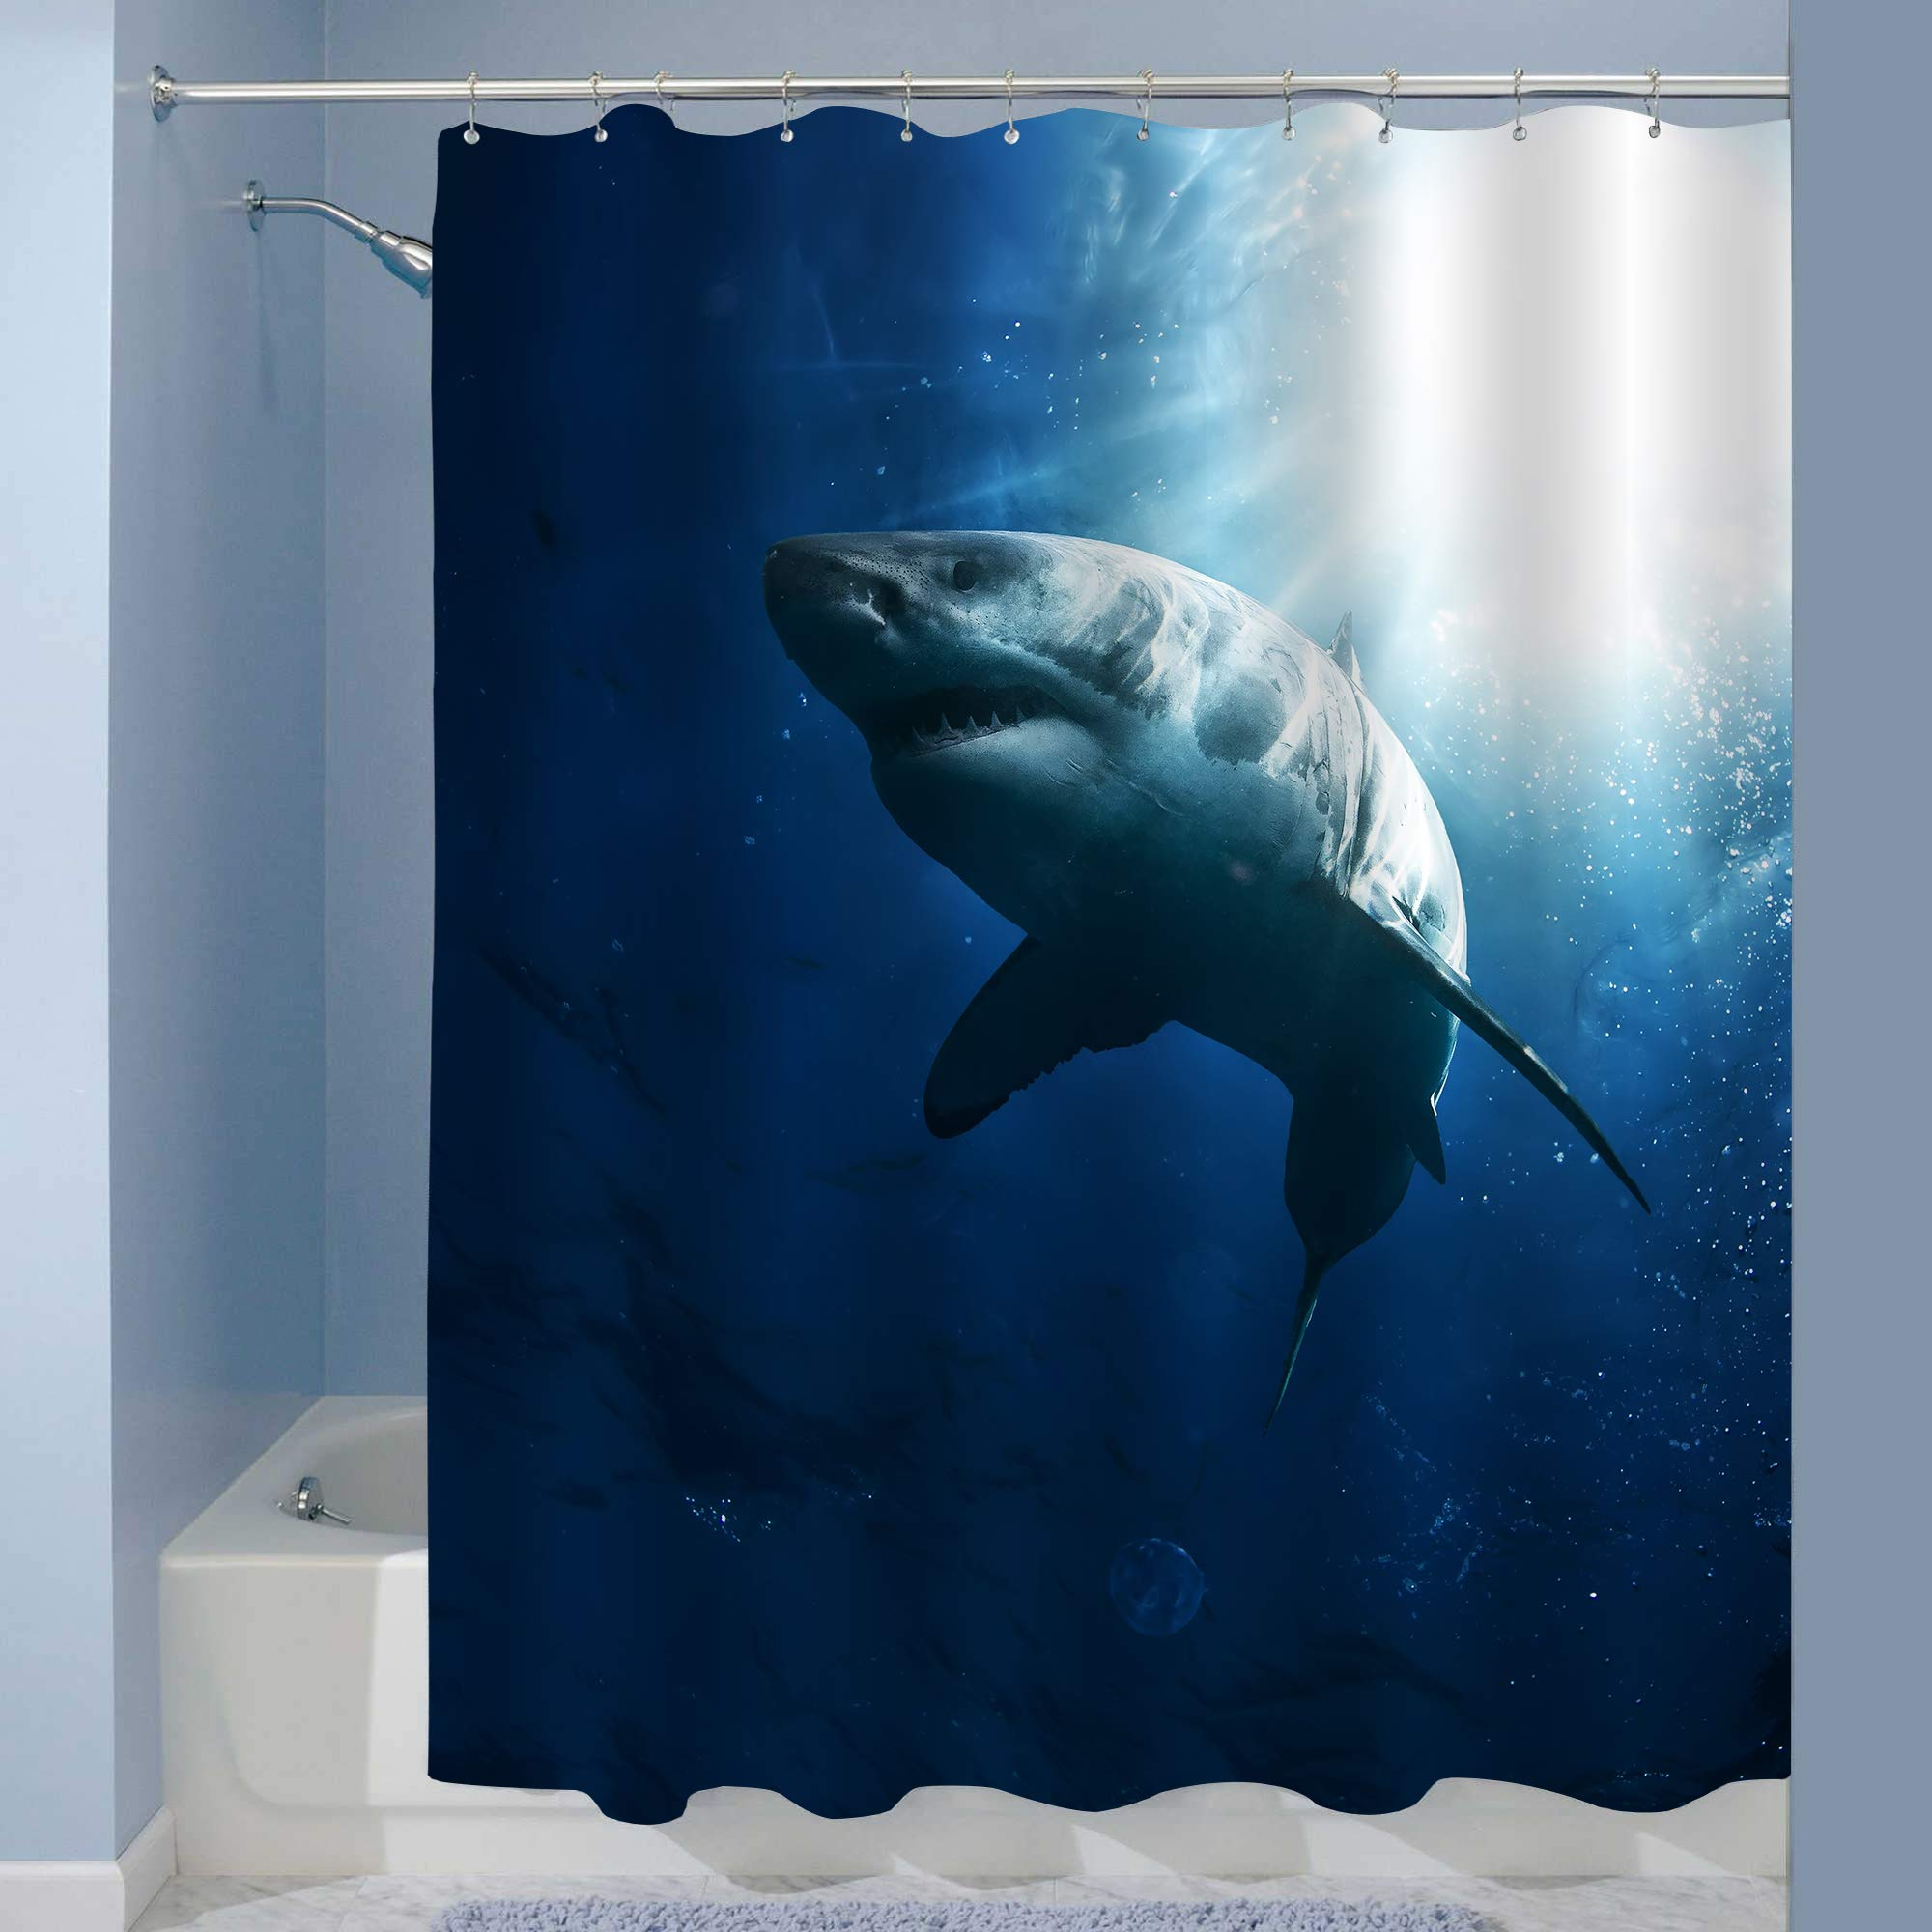 Great White Sharks Cruises in the Ocean Underwater with Sunrays Shower Curtain Set, Degerous Wild Life in Underwater World, Washable Cloth Bathroom Shower Decoration, Navy Blue, 72 x 72, Standard